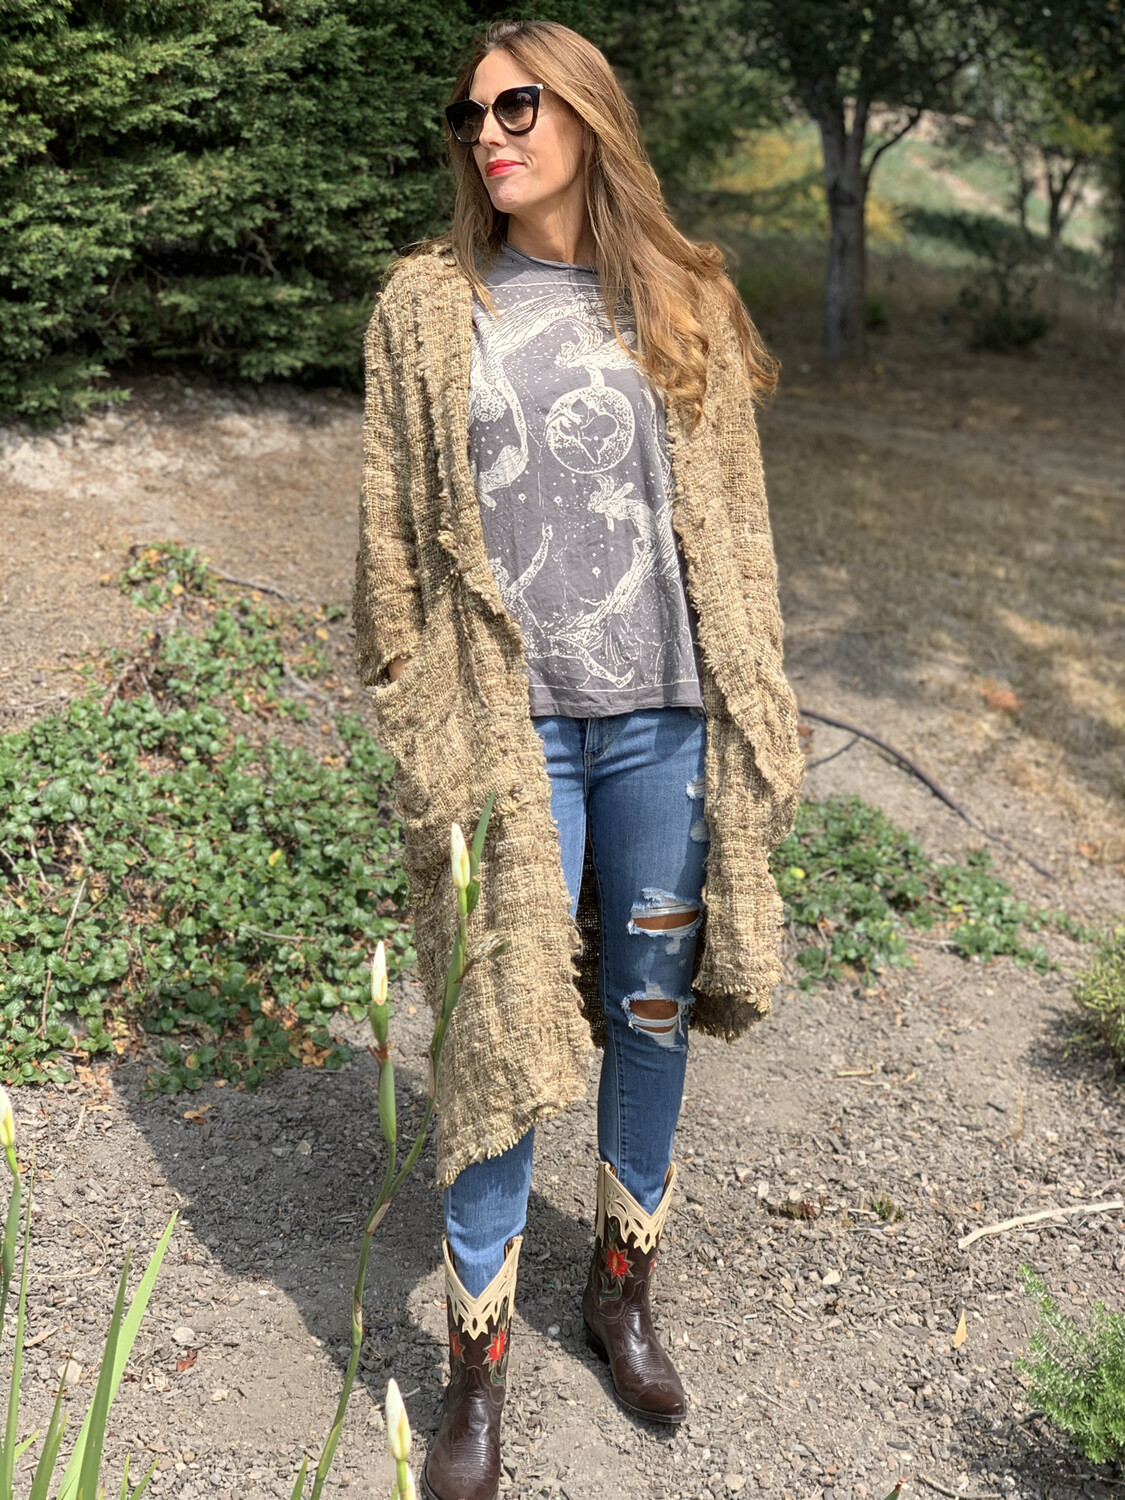 Magnolia Pearl Jacket 432 Brave Heart One Size